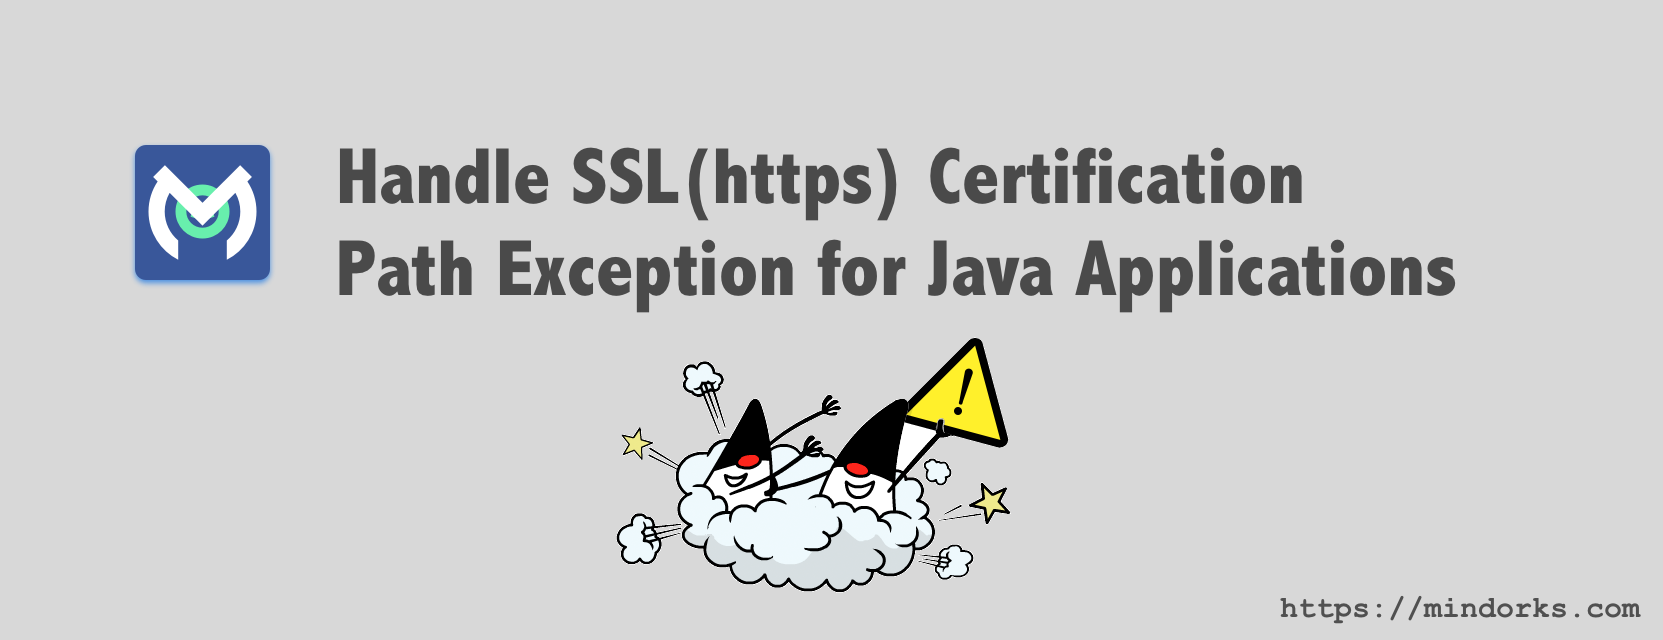 Handle Sslhttps Certification Path Exception For Java Applications